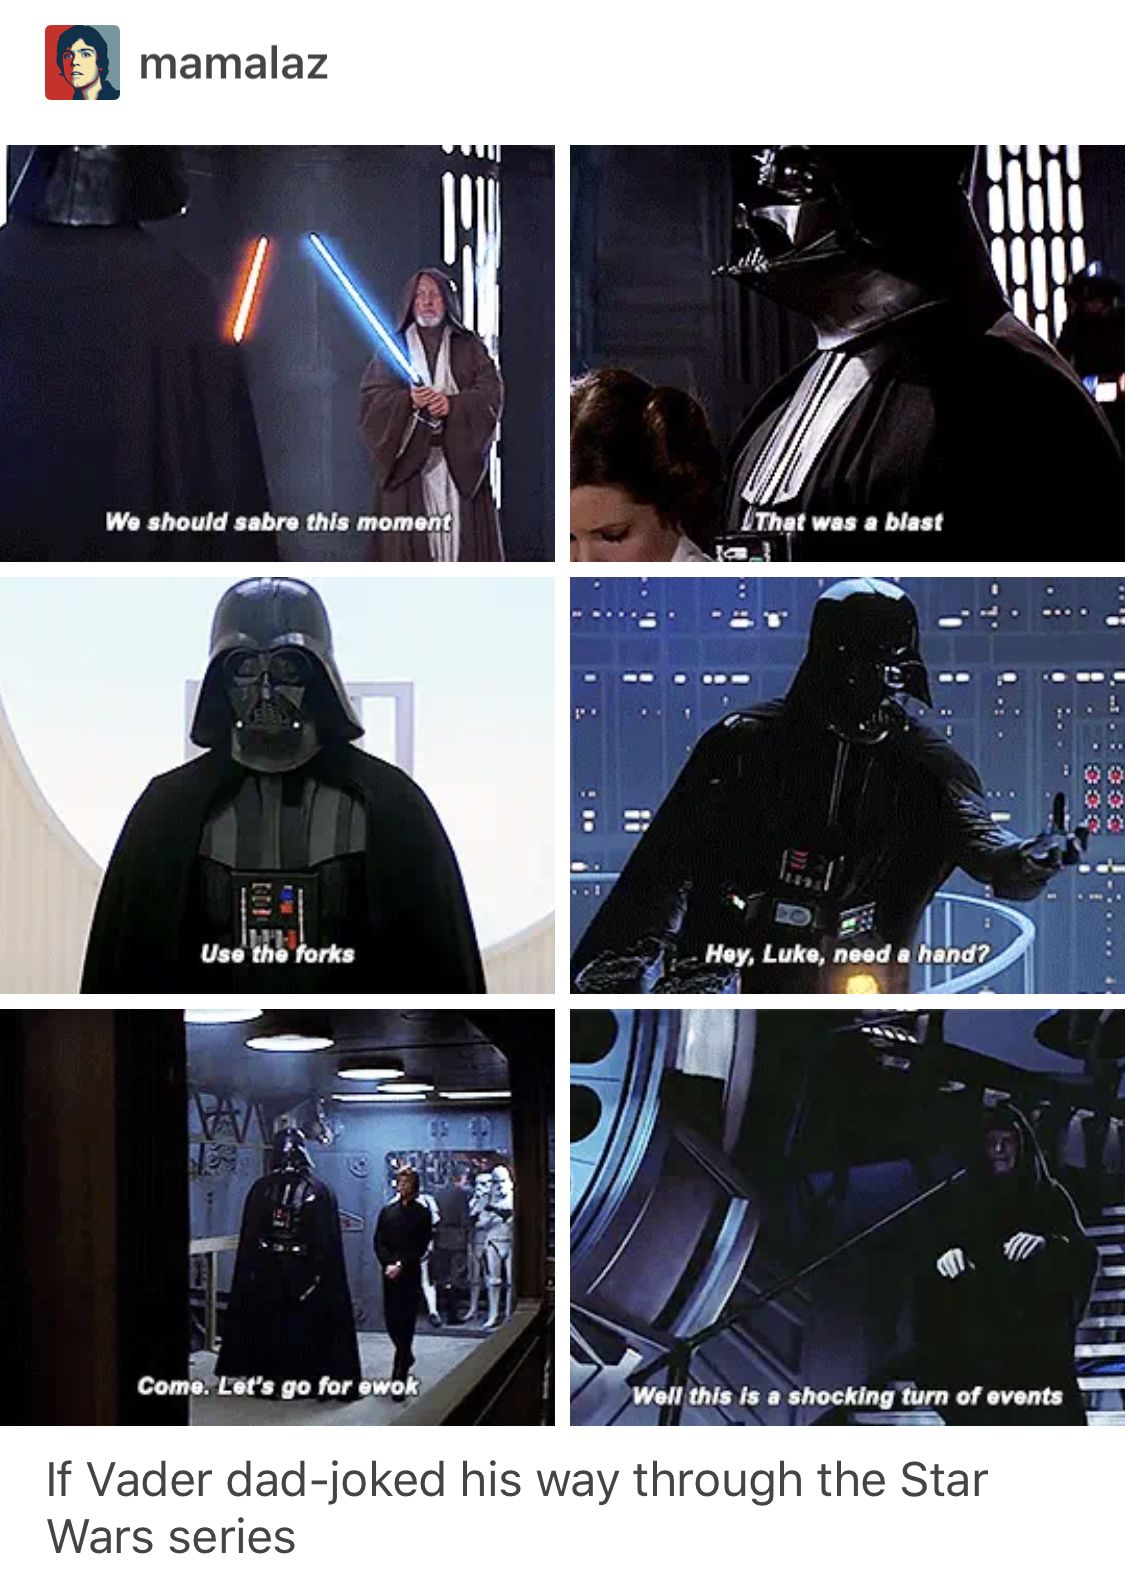 Vader S Dad Jokes With Images Star Wars Humor Star Wars Memes